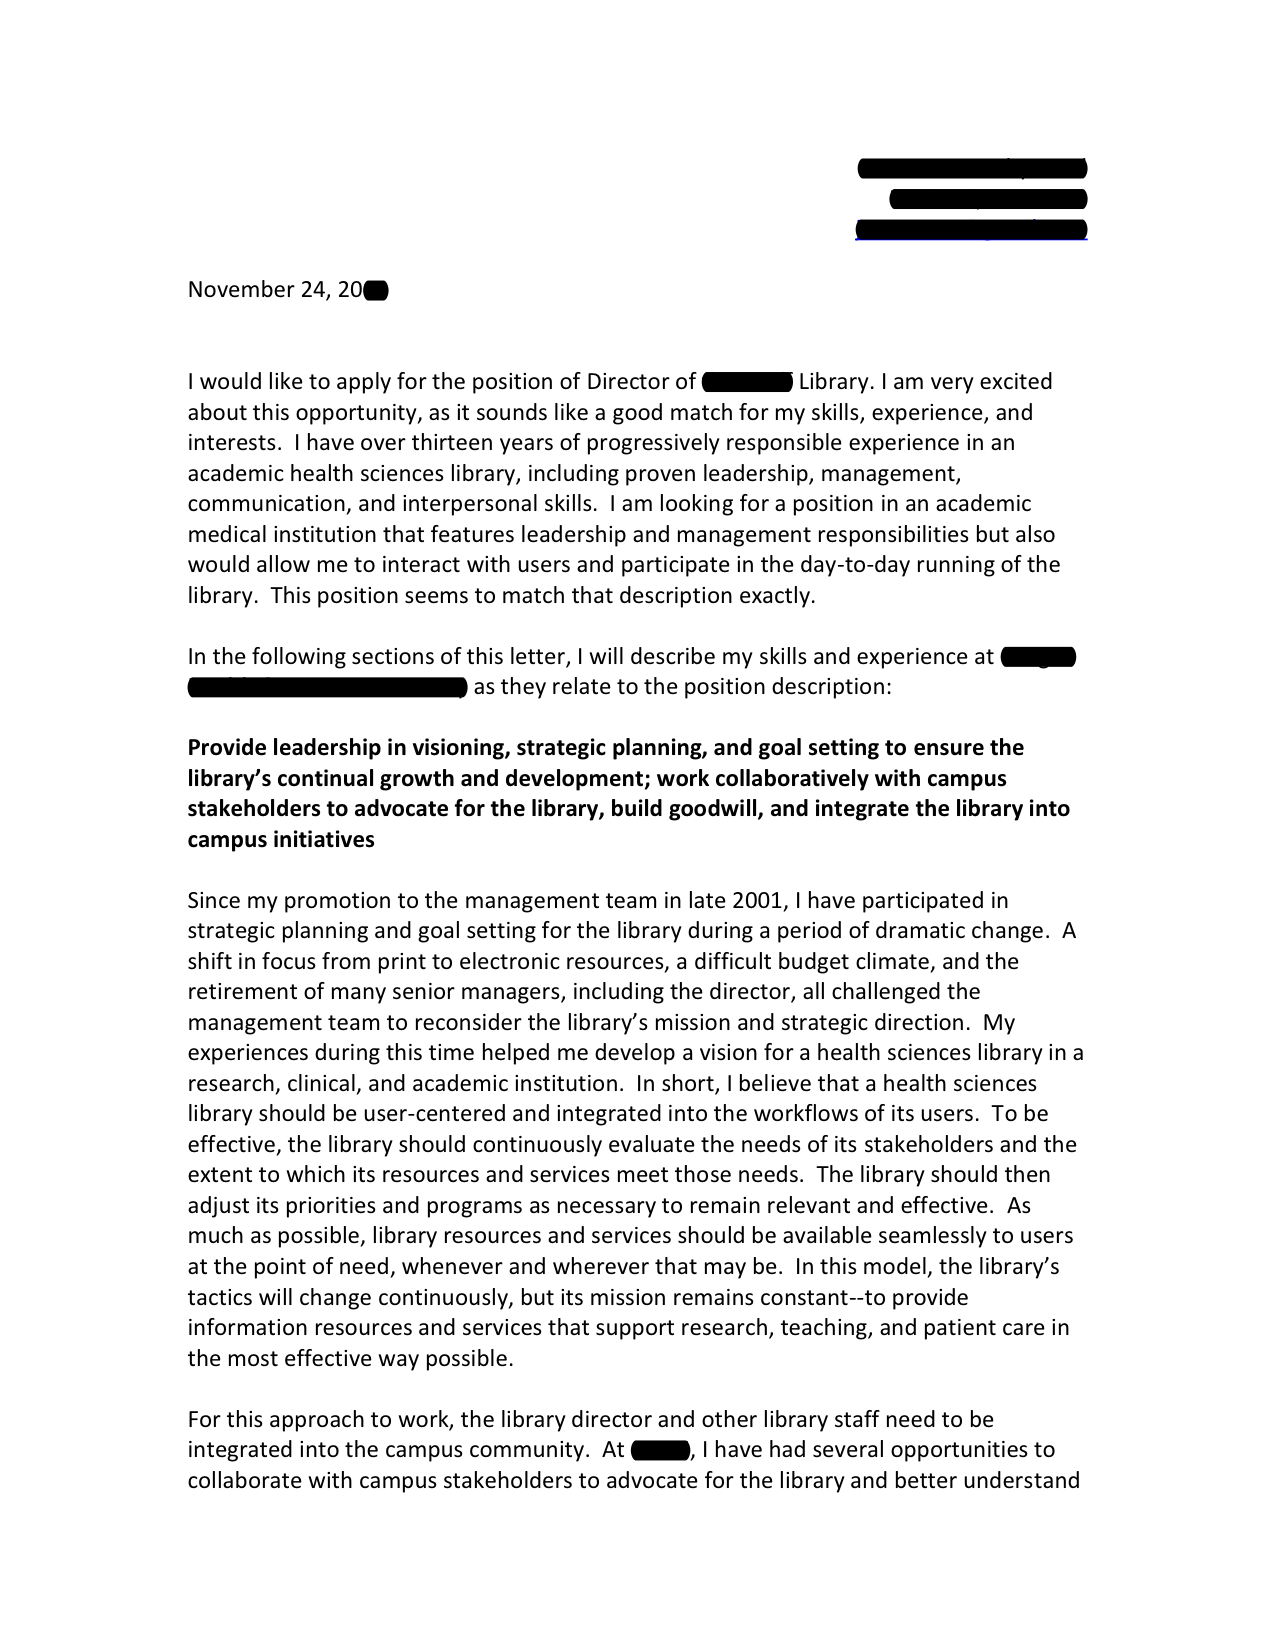 sample cover letter for environmental internship - biomedical research library director cover letter open